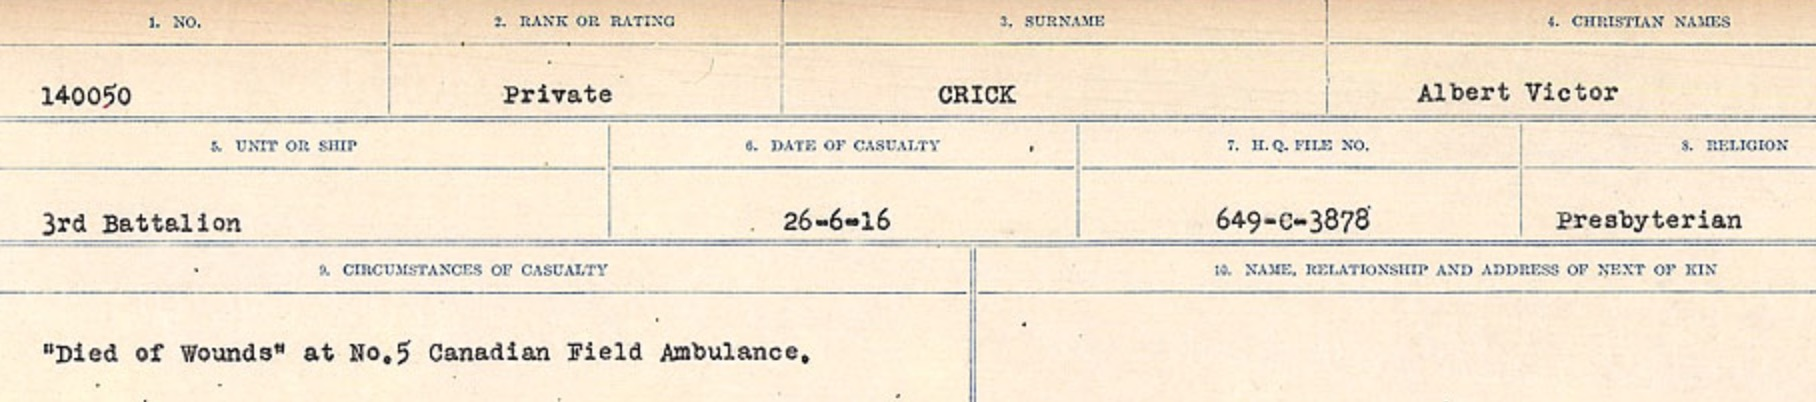 Circumstances of death registers– Source: Library and Archives Canada. CIRCUMSTANCES OF DEATH REGISTERS, FIRST WORLD WAR Surnames: CRABB TO CROSSLAND Microform Sequence 24; Volume Number 31829_B016733. Reference RG150, 1992-93/314, 168. Page 517 of 788.